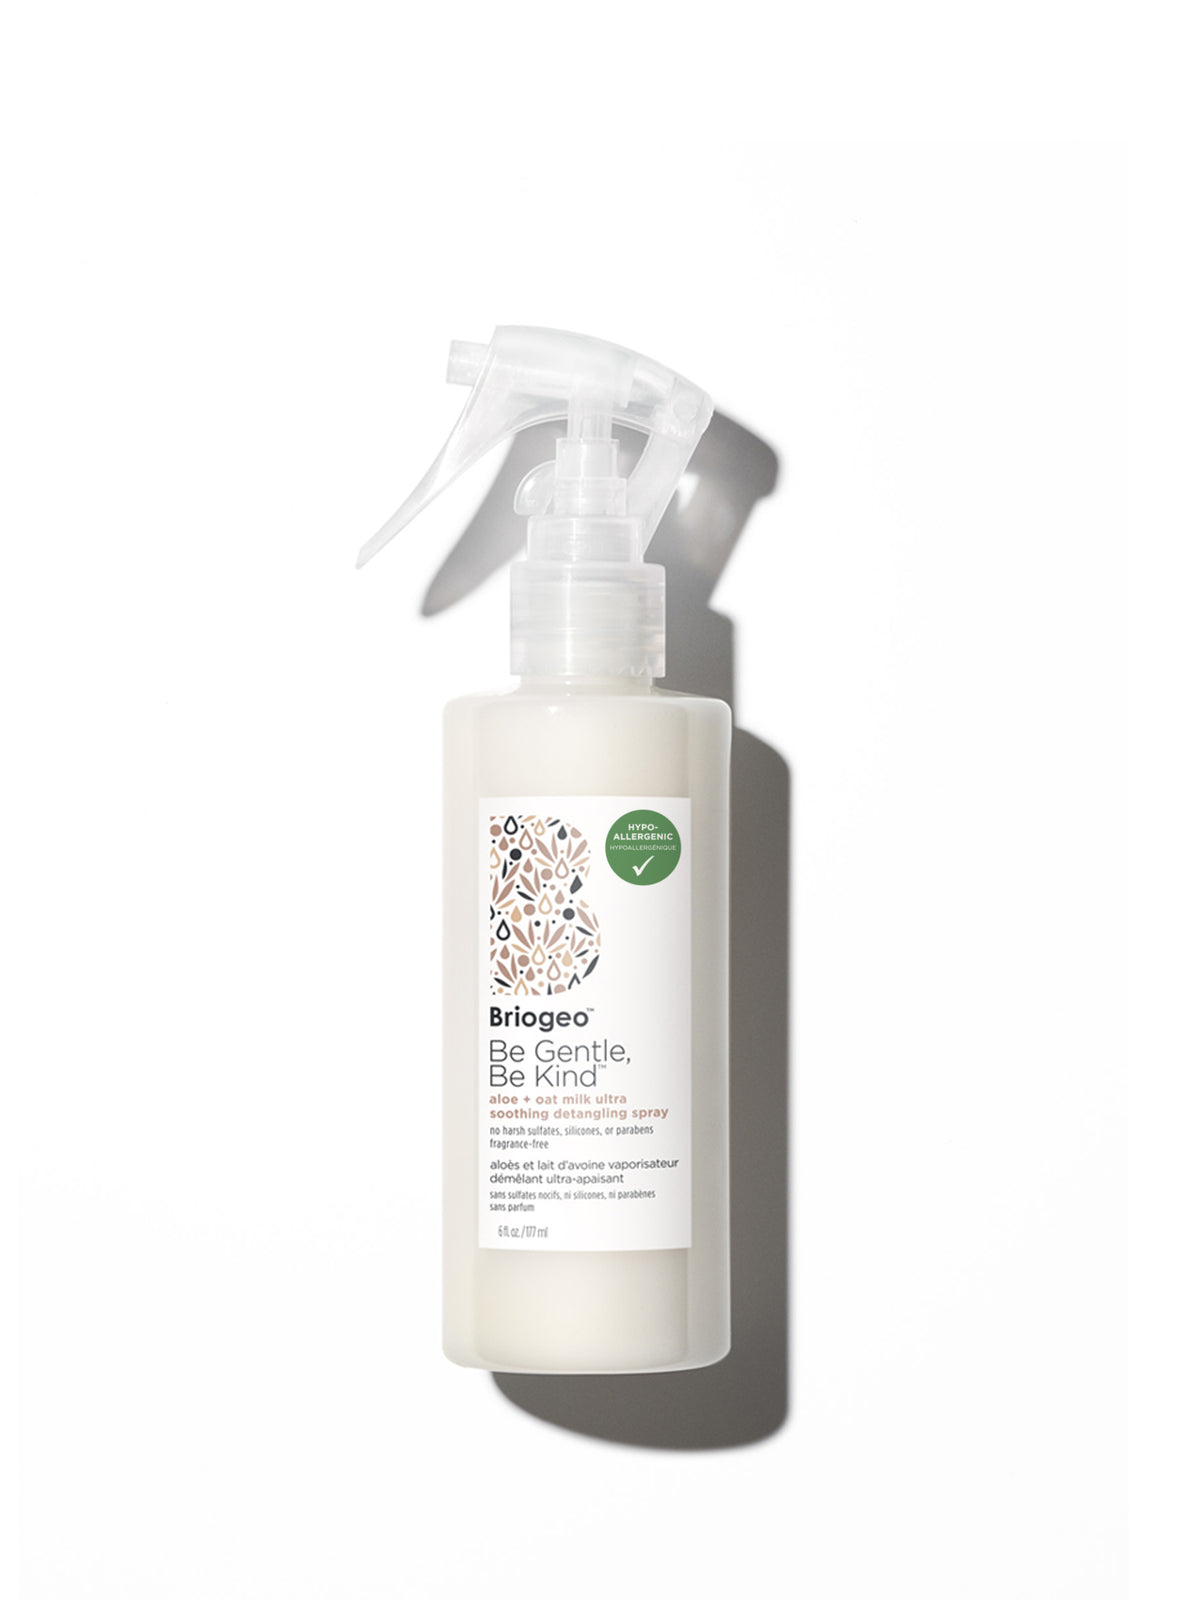 Be Gentle, Be Kind Aloe + Oat Milk Ultra Soothing Detangling Spray